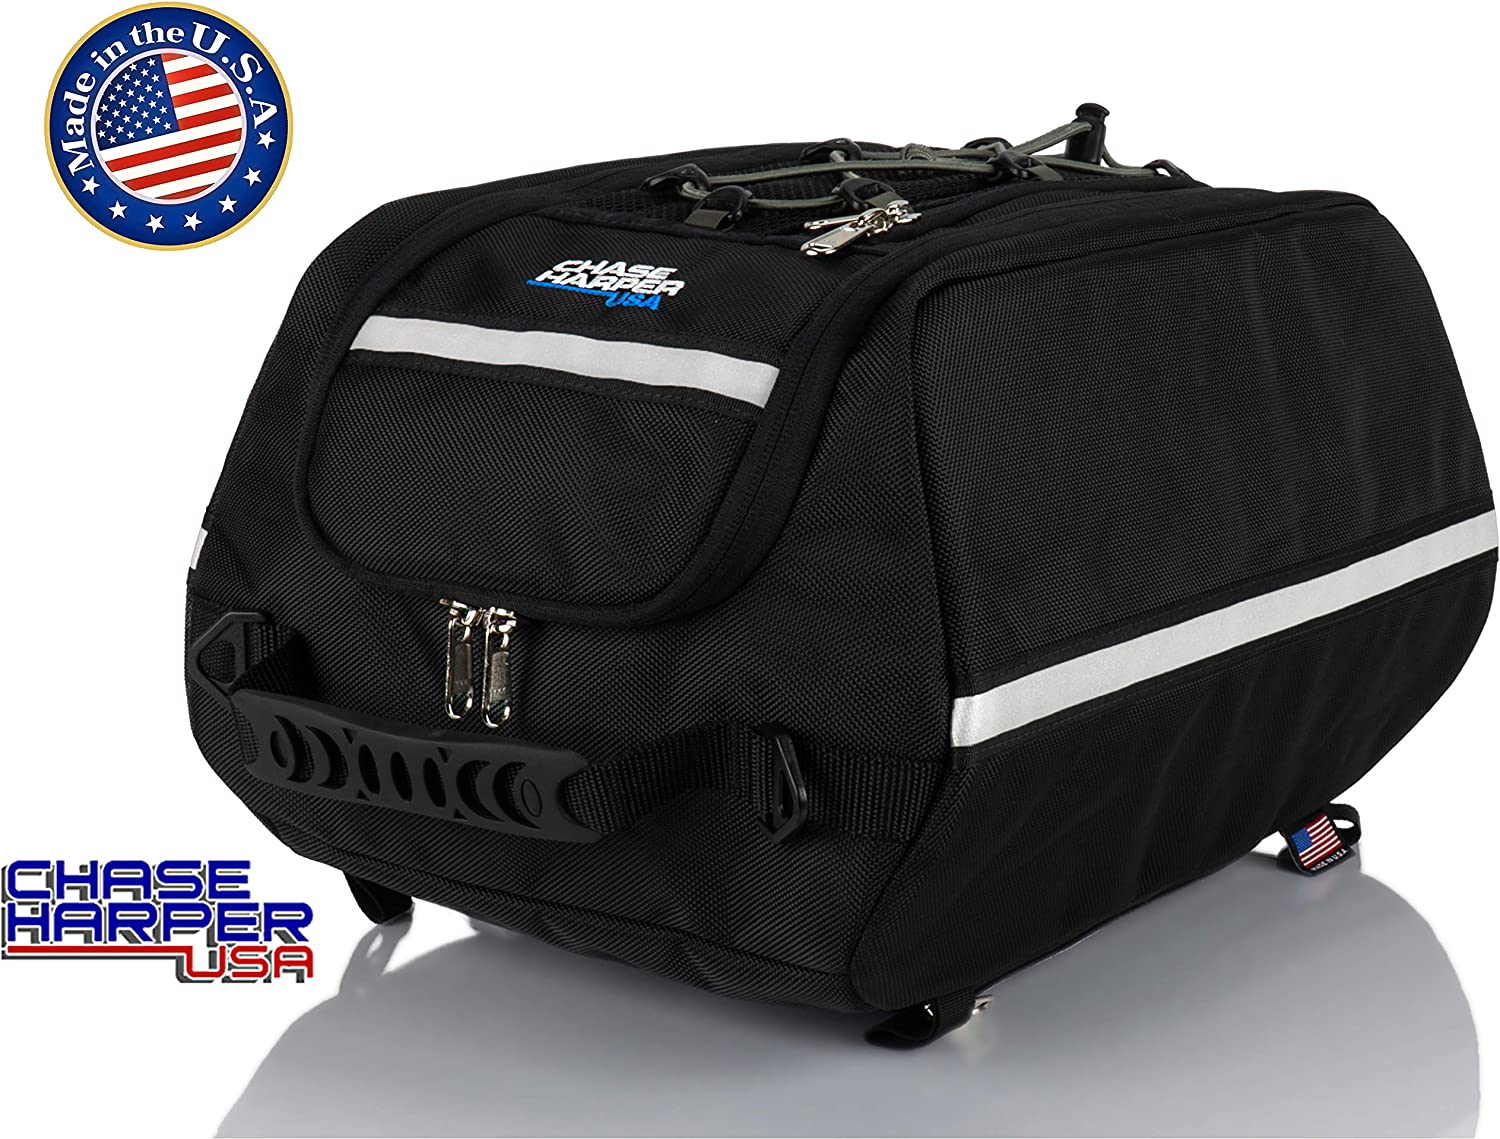 Chase Harper USA 4000 Aeropac Tail Trunk}